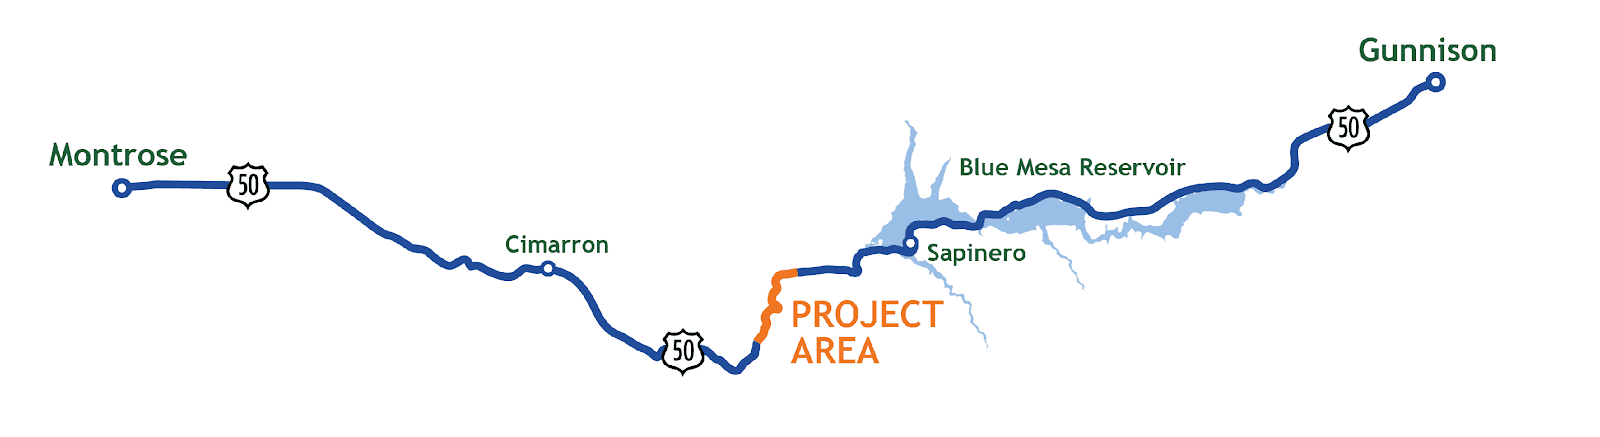 us50 project area.png detail image